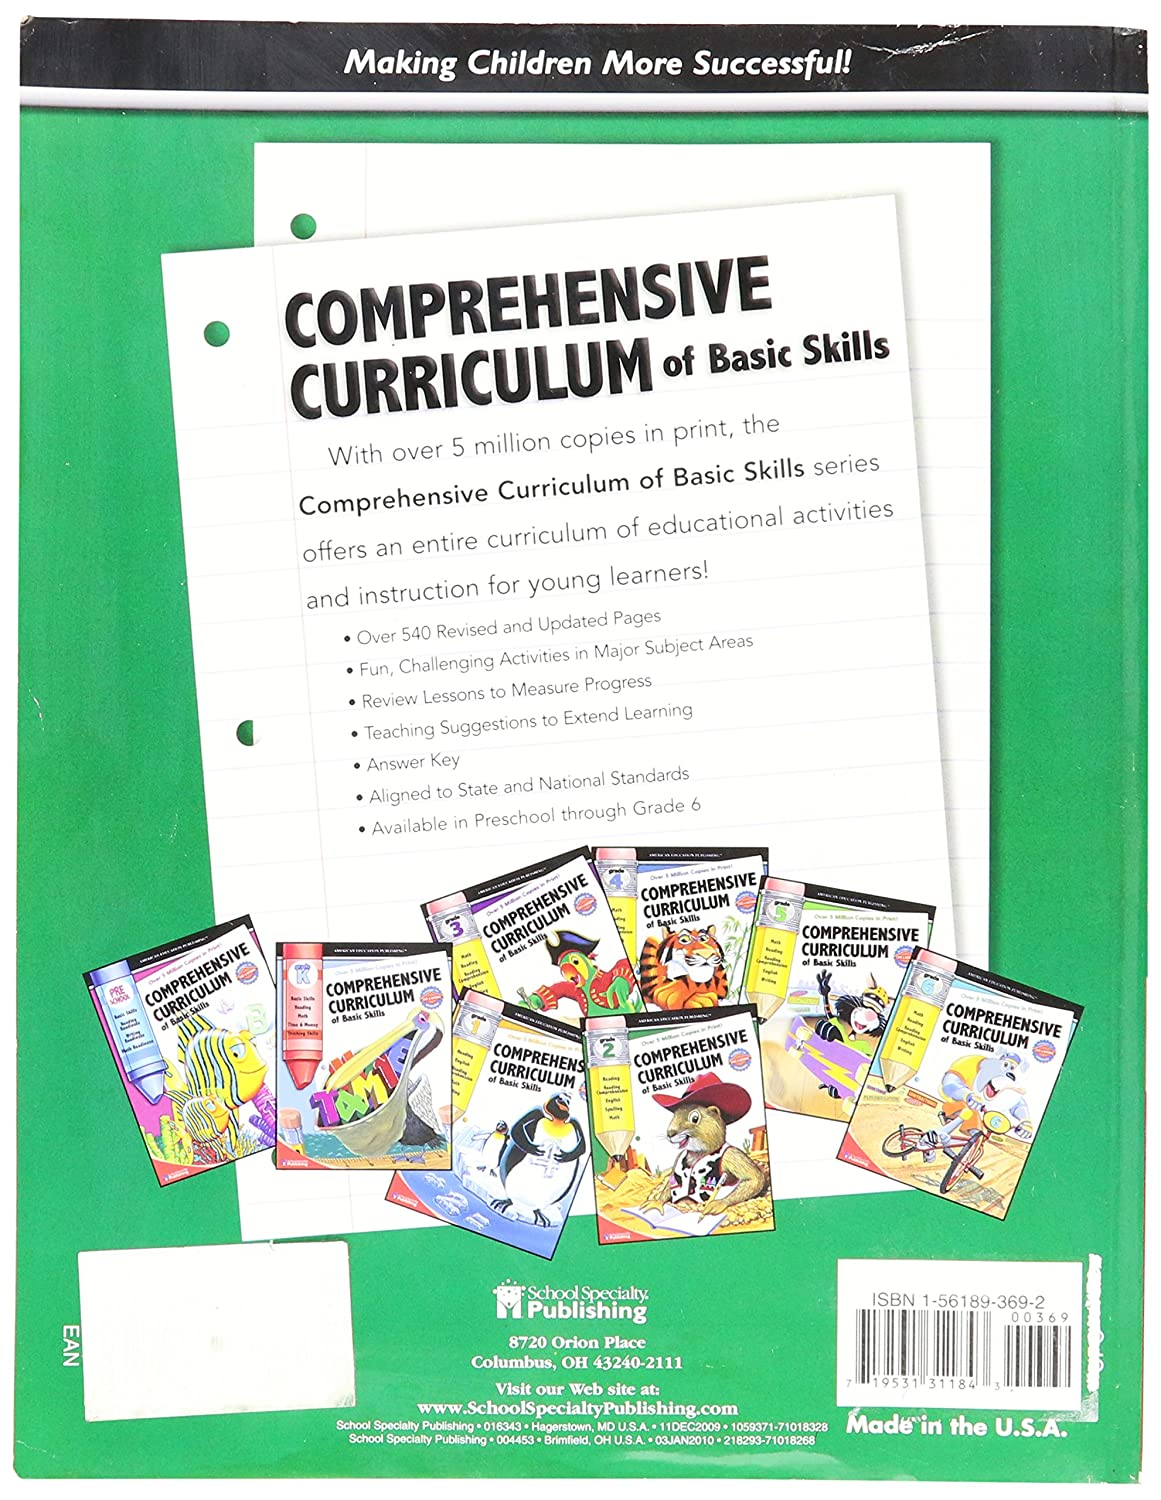 worksheet Frank Schaffer Publications Worksheets amazon com frank schaffer publications comprehensive curric second grade toys games